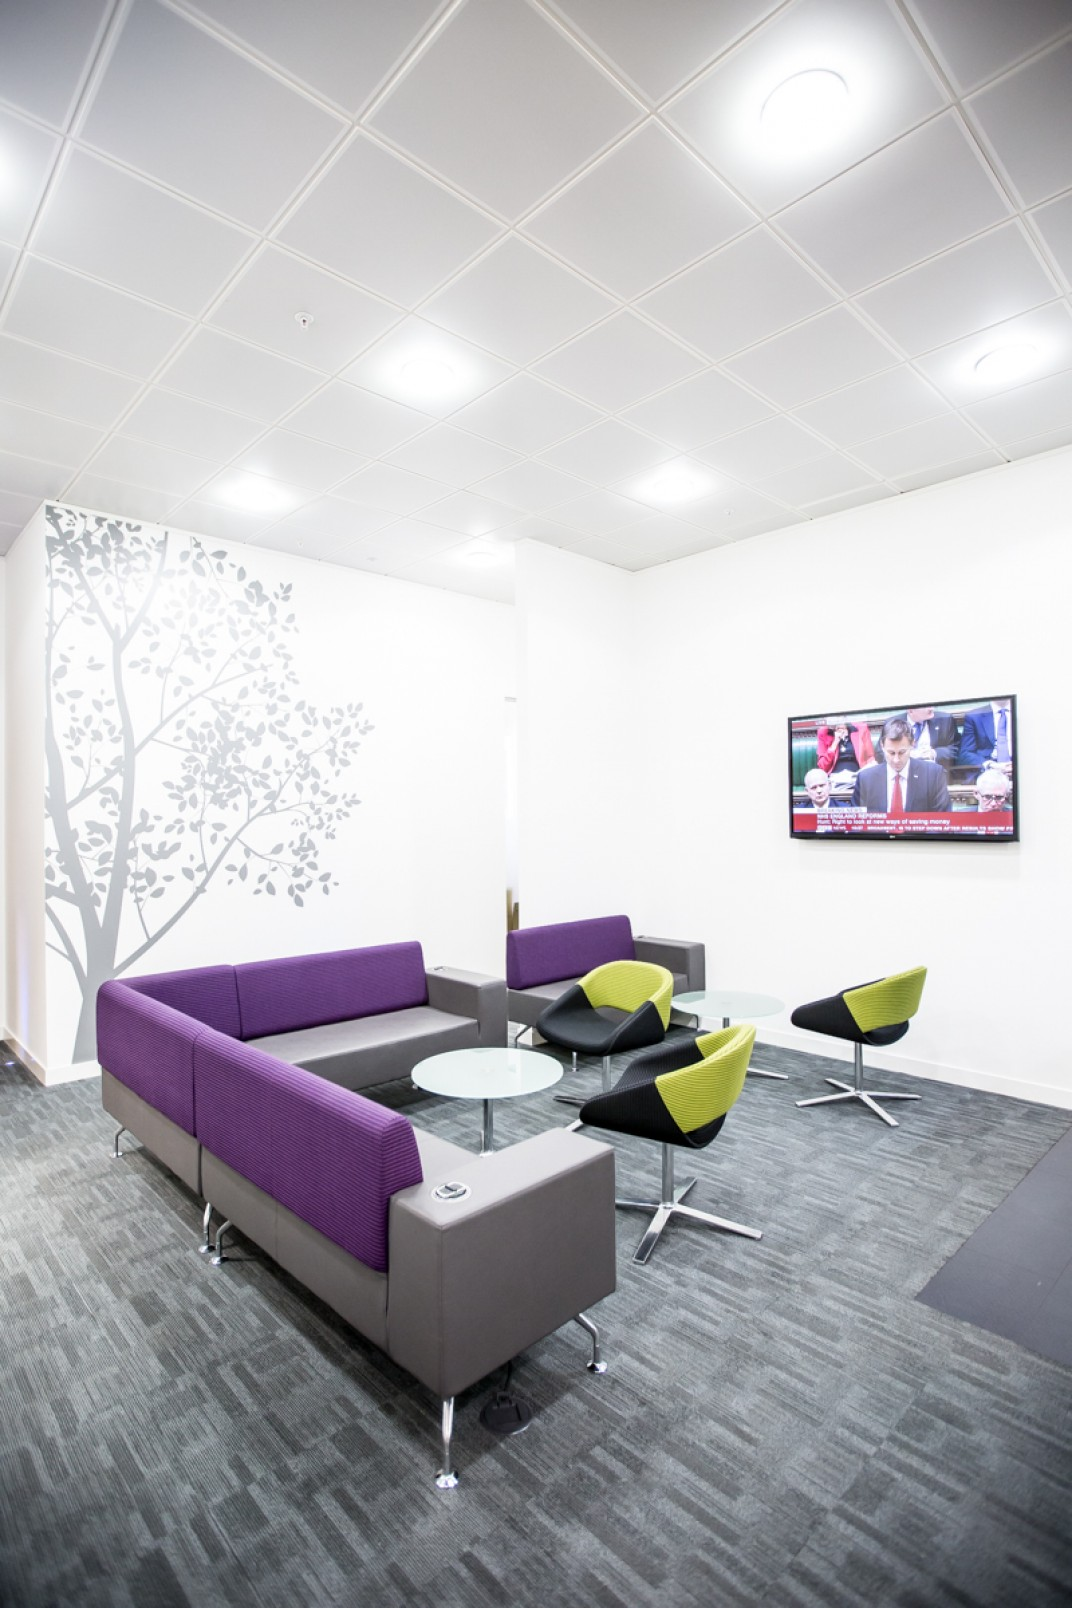 Images for Piccadilly Place, Manchester, M1 3BN EAID:3928049530 BID:2